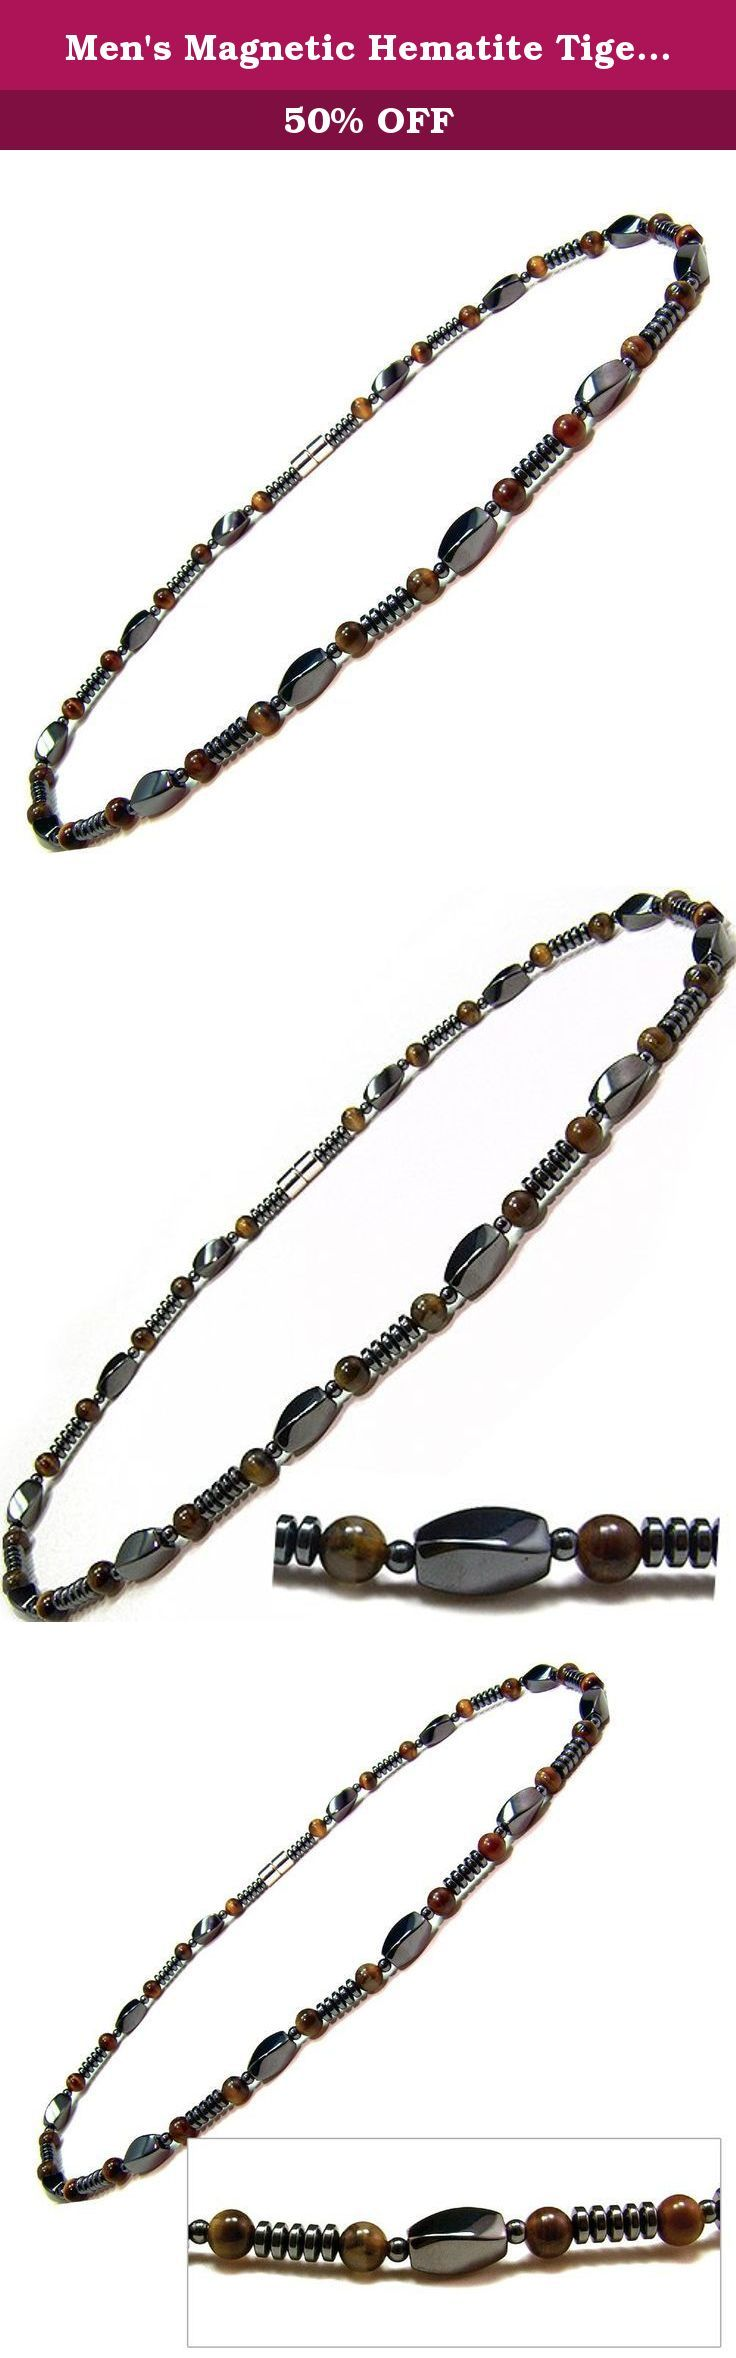 """Men's Magnetic Hematite Tiger's Eye Bead Necklace 18"""". A stylish magnetic hematite necklace, the piece features tiger's eye beads, twist black magnetic hematite beads and a strong magnetic clasp enclosure which will hold this fabulous piece in style. Each magnetic hematite bead measures Approx. 600-700 gauss magnetic power. It meausres 1/4"""" in width and looks great on both men and women."""